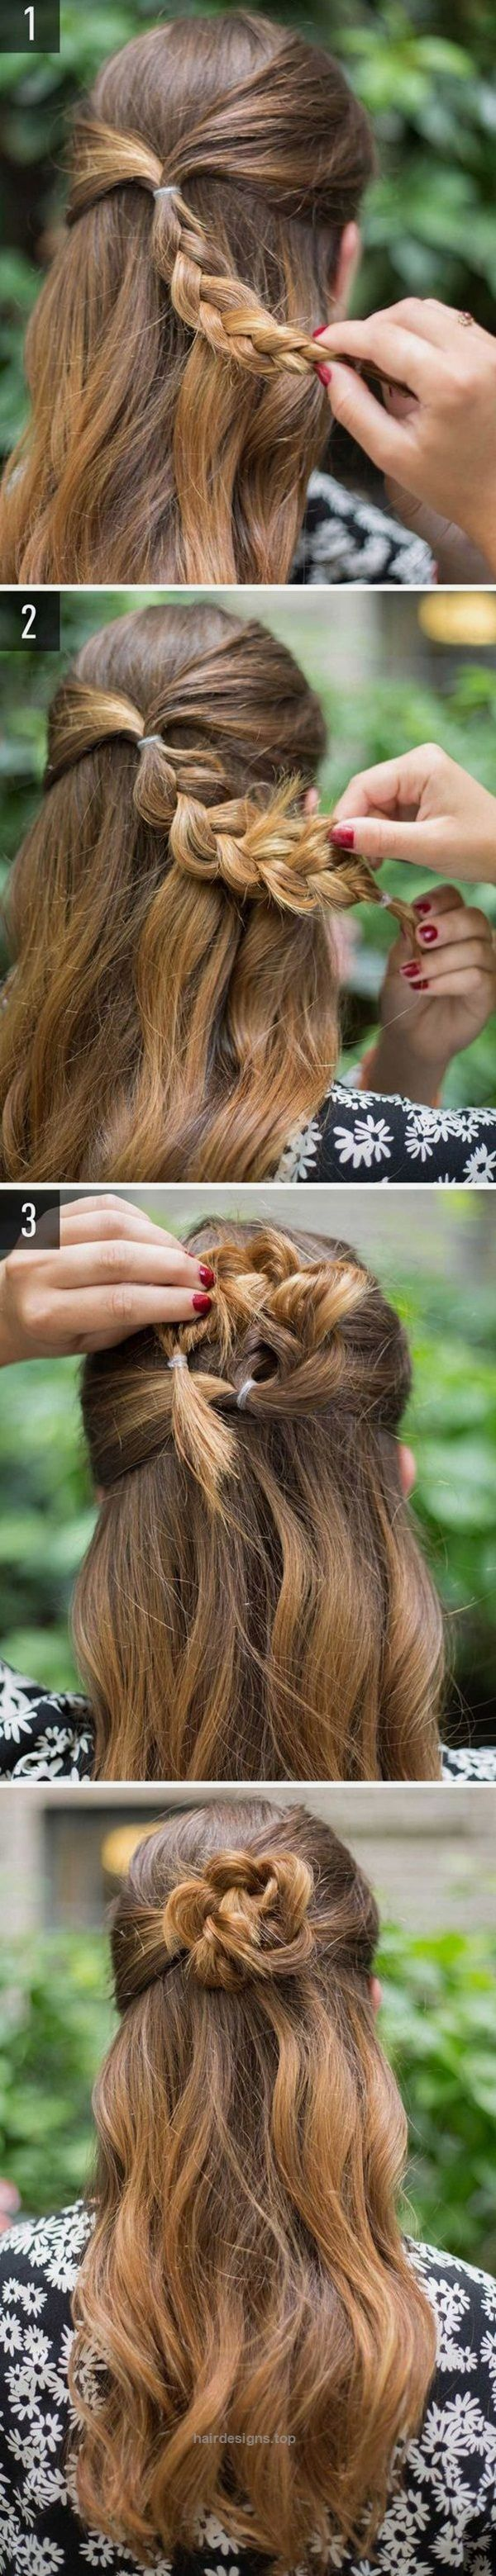 40 Easy Hairstyles for Schools to Try in 2017. Quick, Easy, Cute and Simple Ste… http://www.hairdesigns.top/2017/07/17/40-easy-hairstyles-for-schools-to-try-in-2017-quick-easy-cute-and-simple-ste-3/ (Top Bun Short)